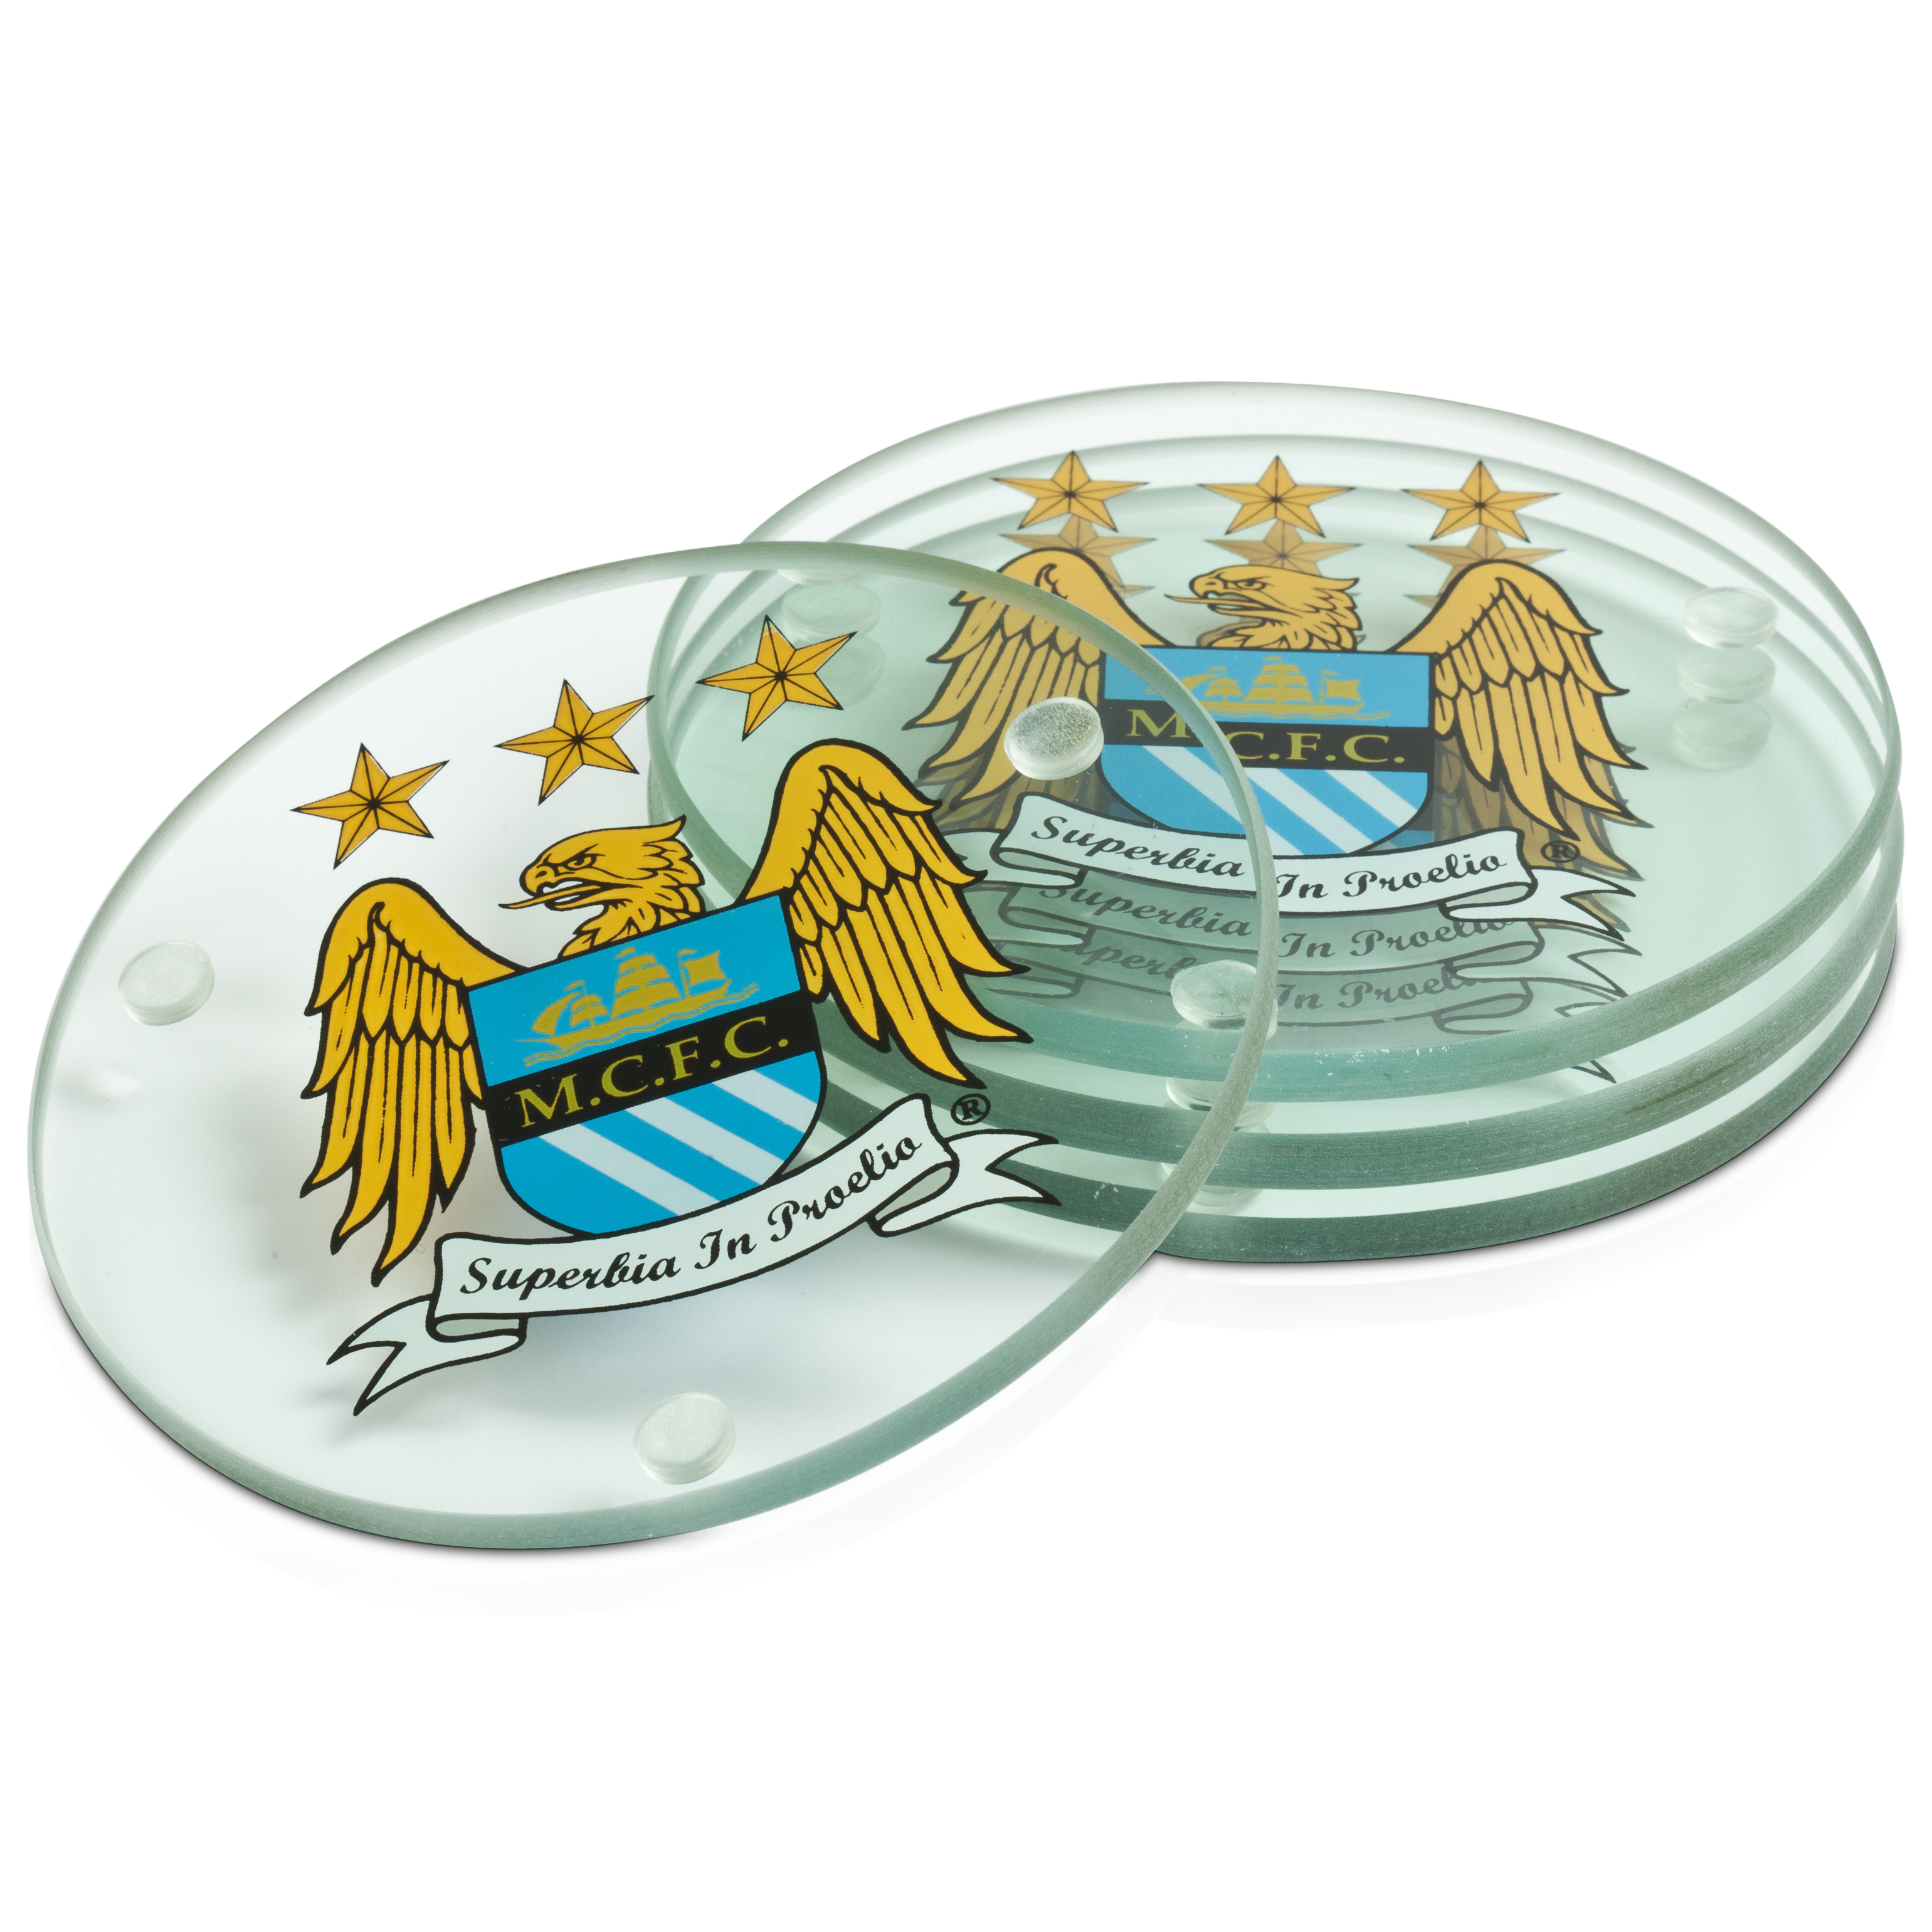 Manchester City Crest Round Glass Coasters 4 Pack - Clear